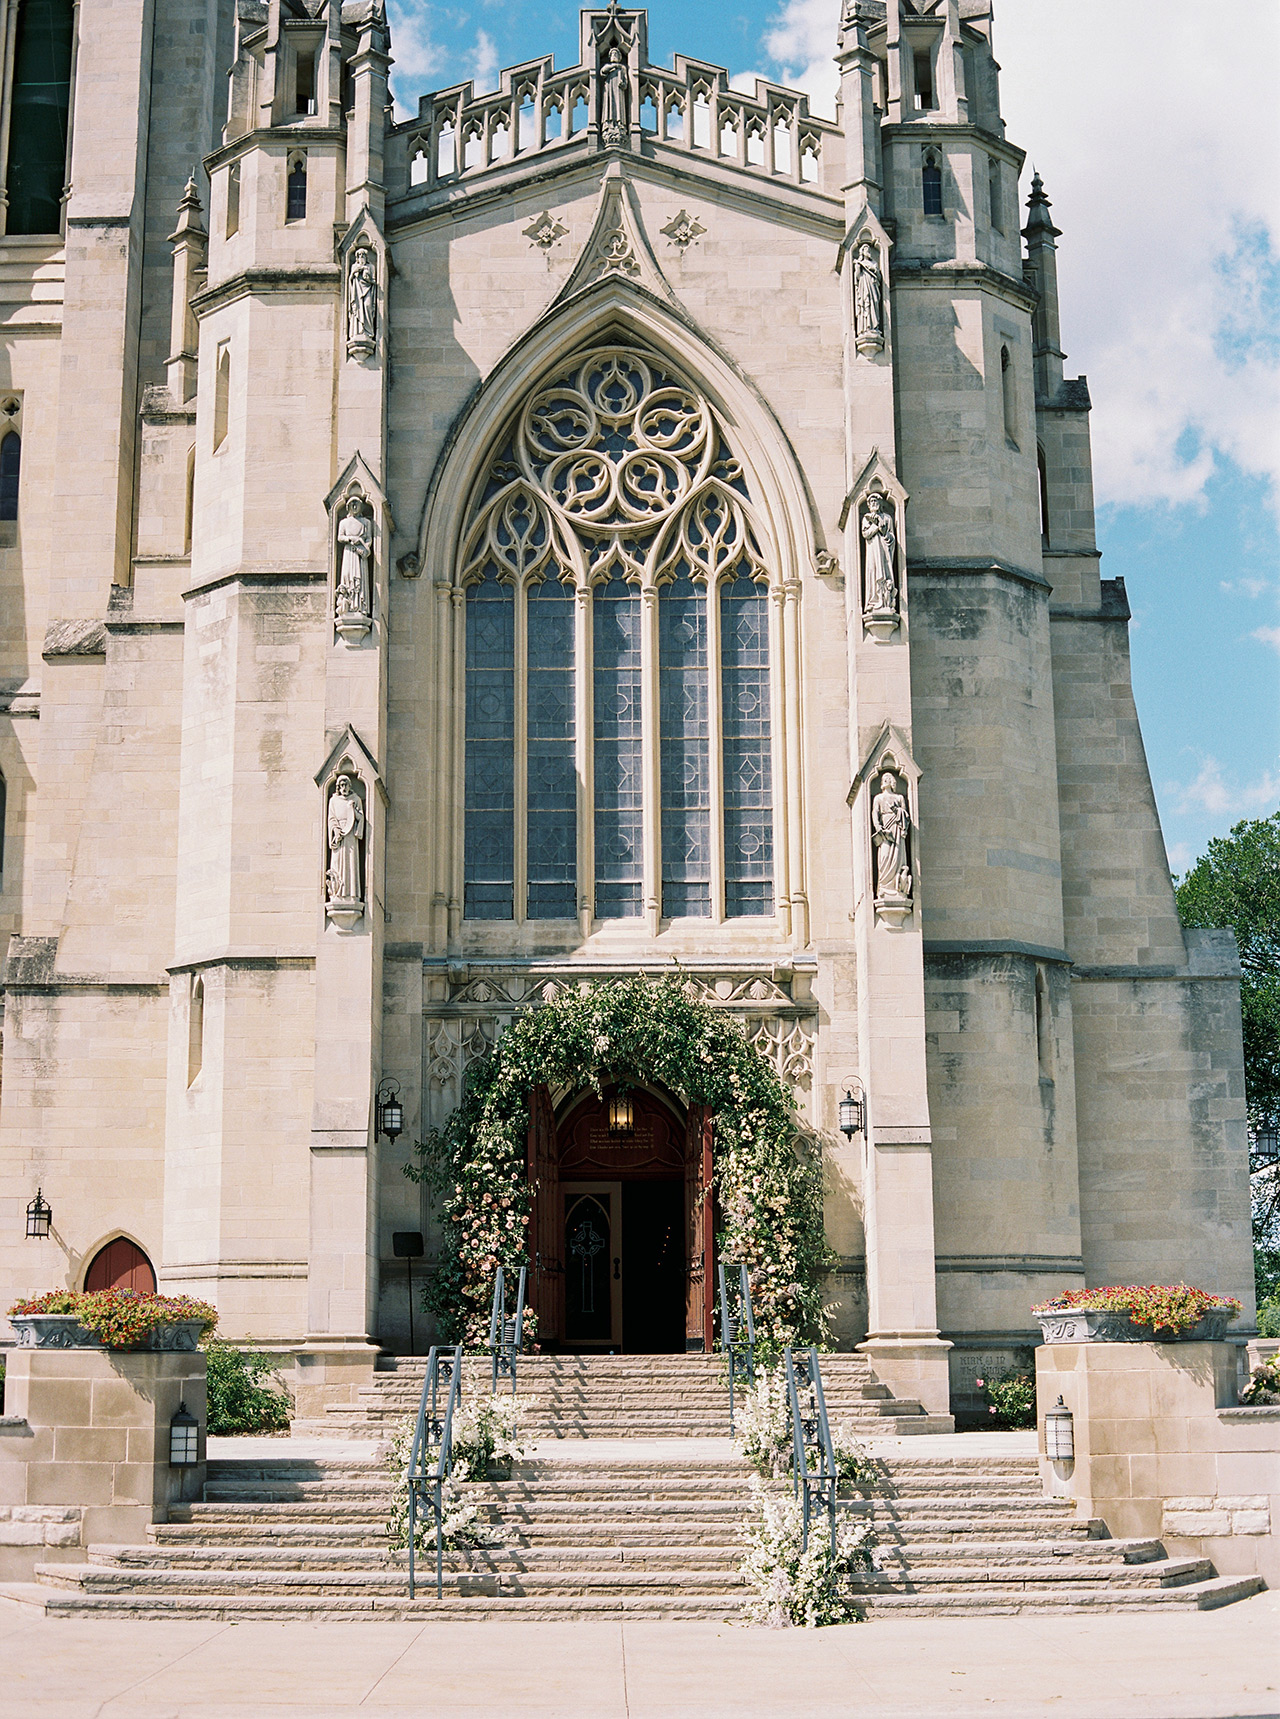 gothic-style church front cathedral floral arrangements